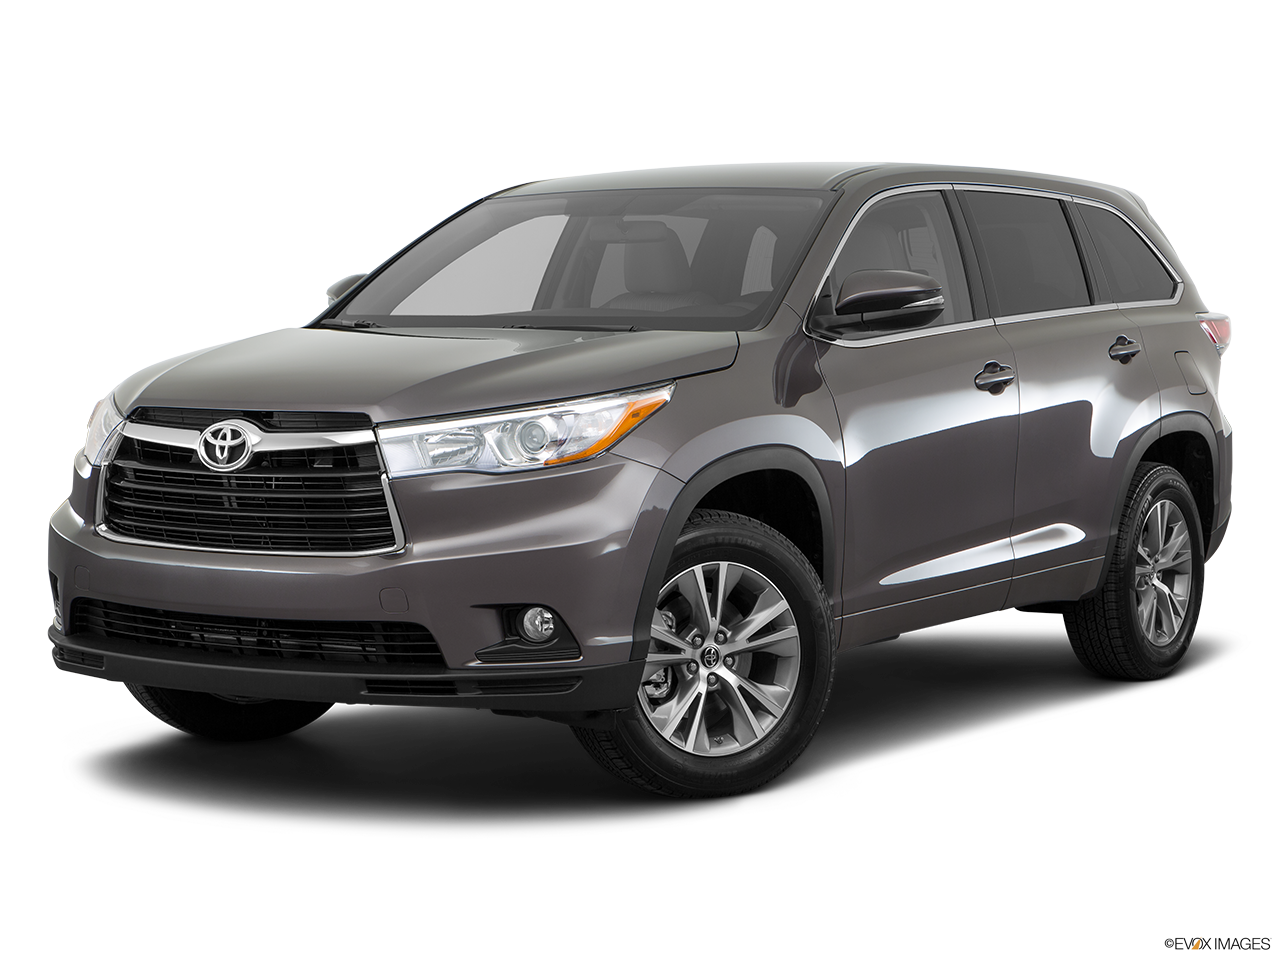 Test Drive A 2016 Toyota Highlander at Madera Toyota in Madera